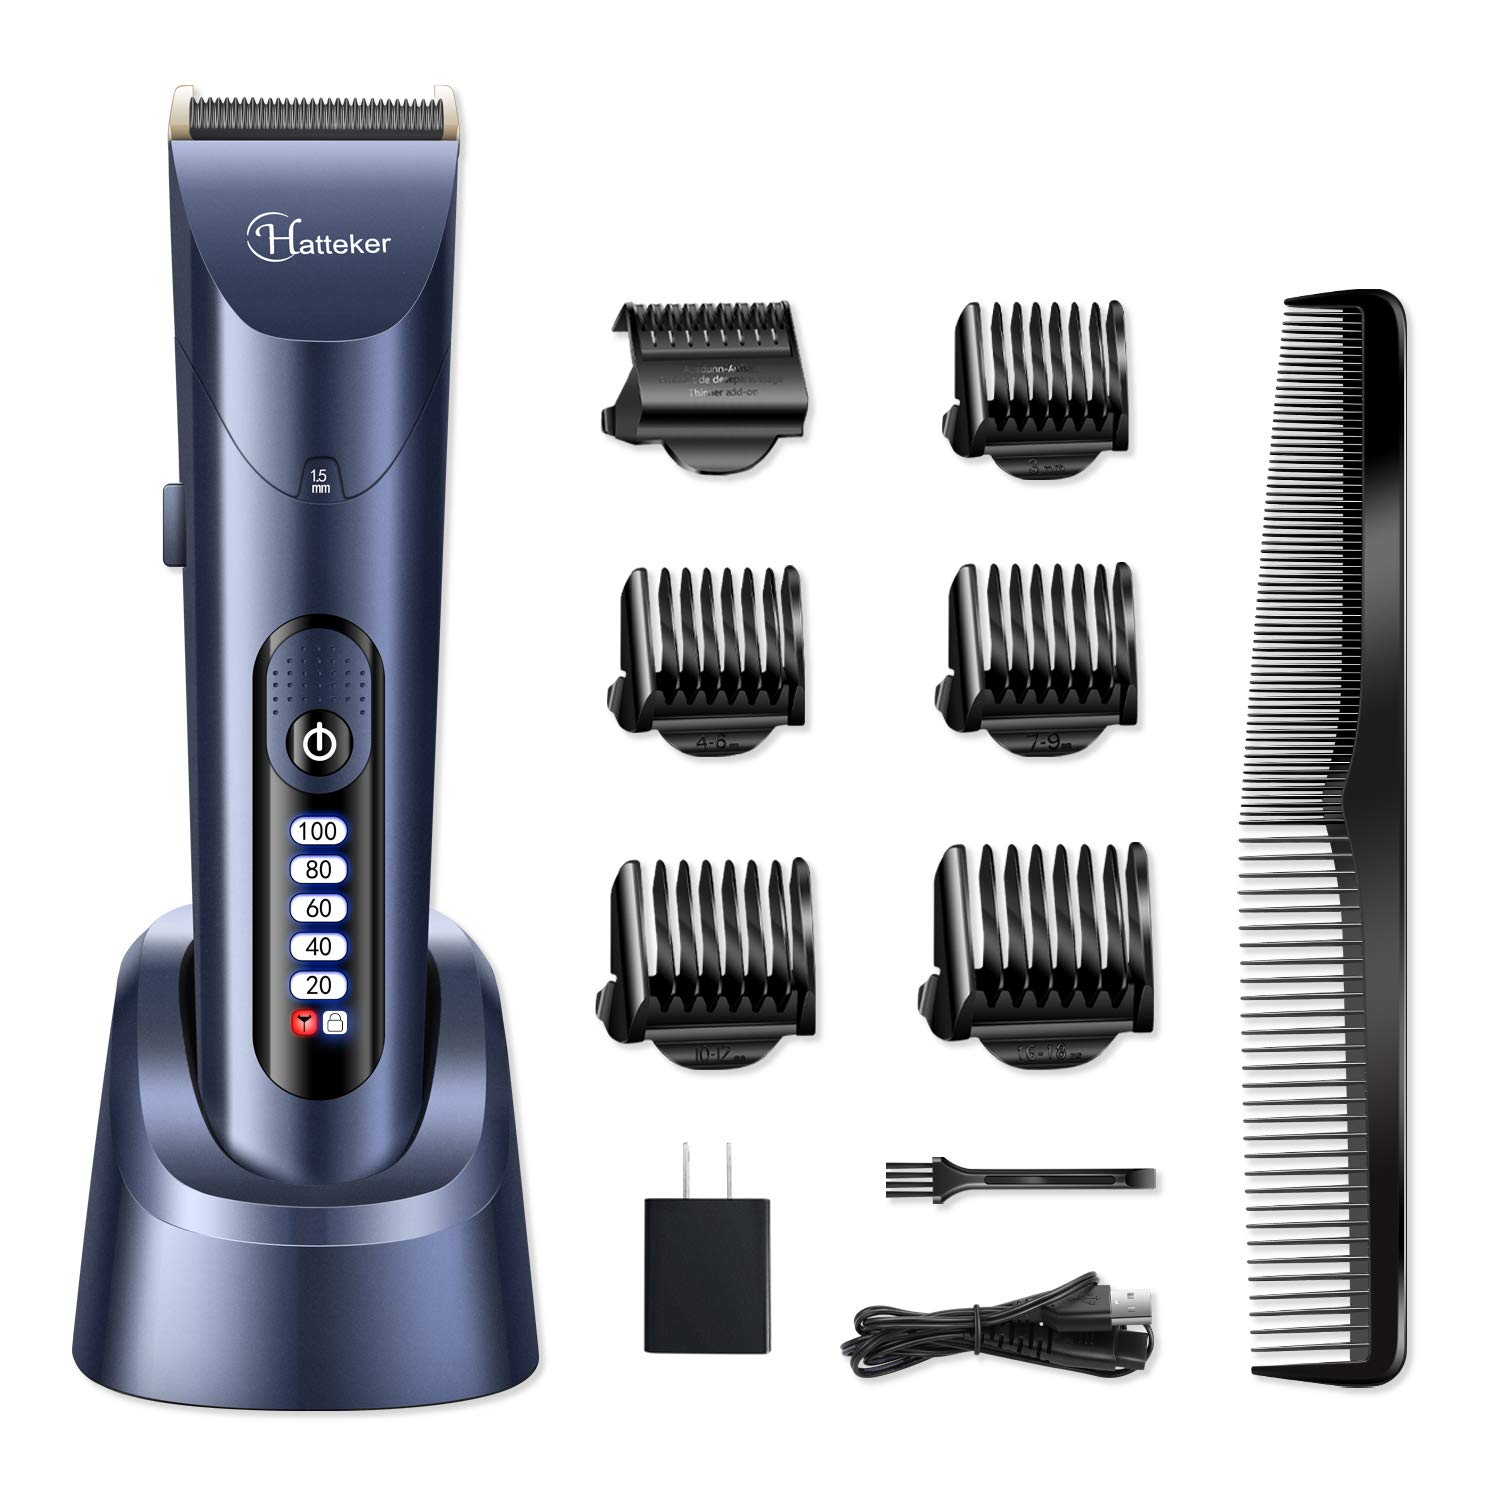 HATTEKER Hair Clippers for Men Cordless Hair Trimmer Beard Trimmer Hair Cutting Kit Waterproof Rechargeable LED Display With Charging Dock by Hatteker